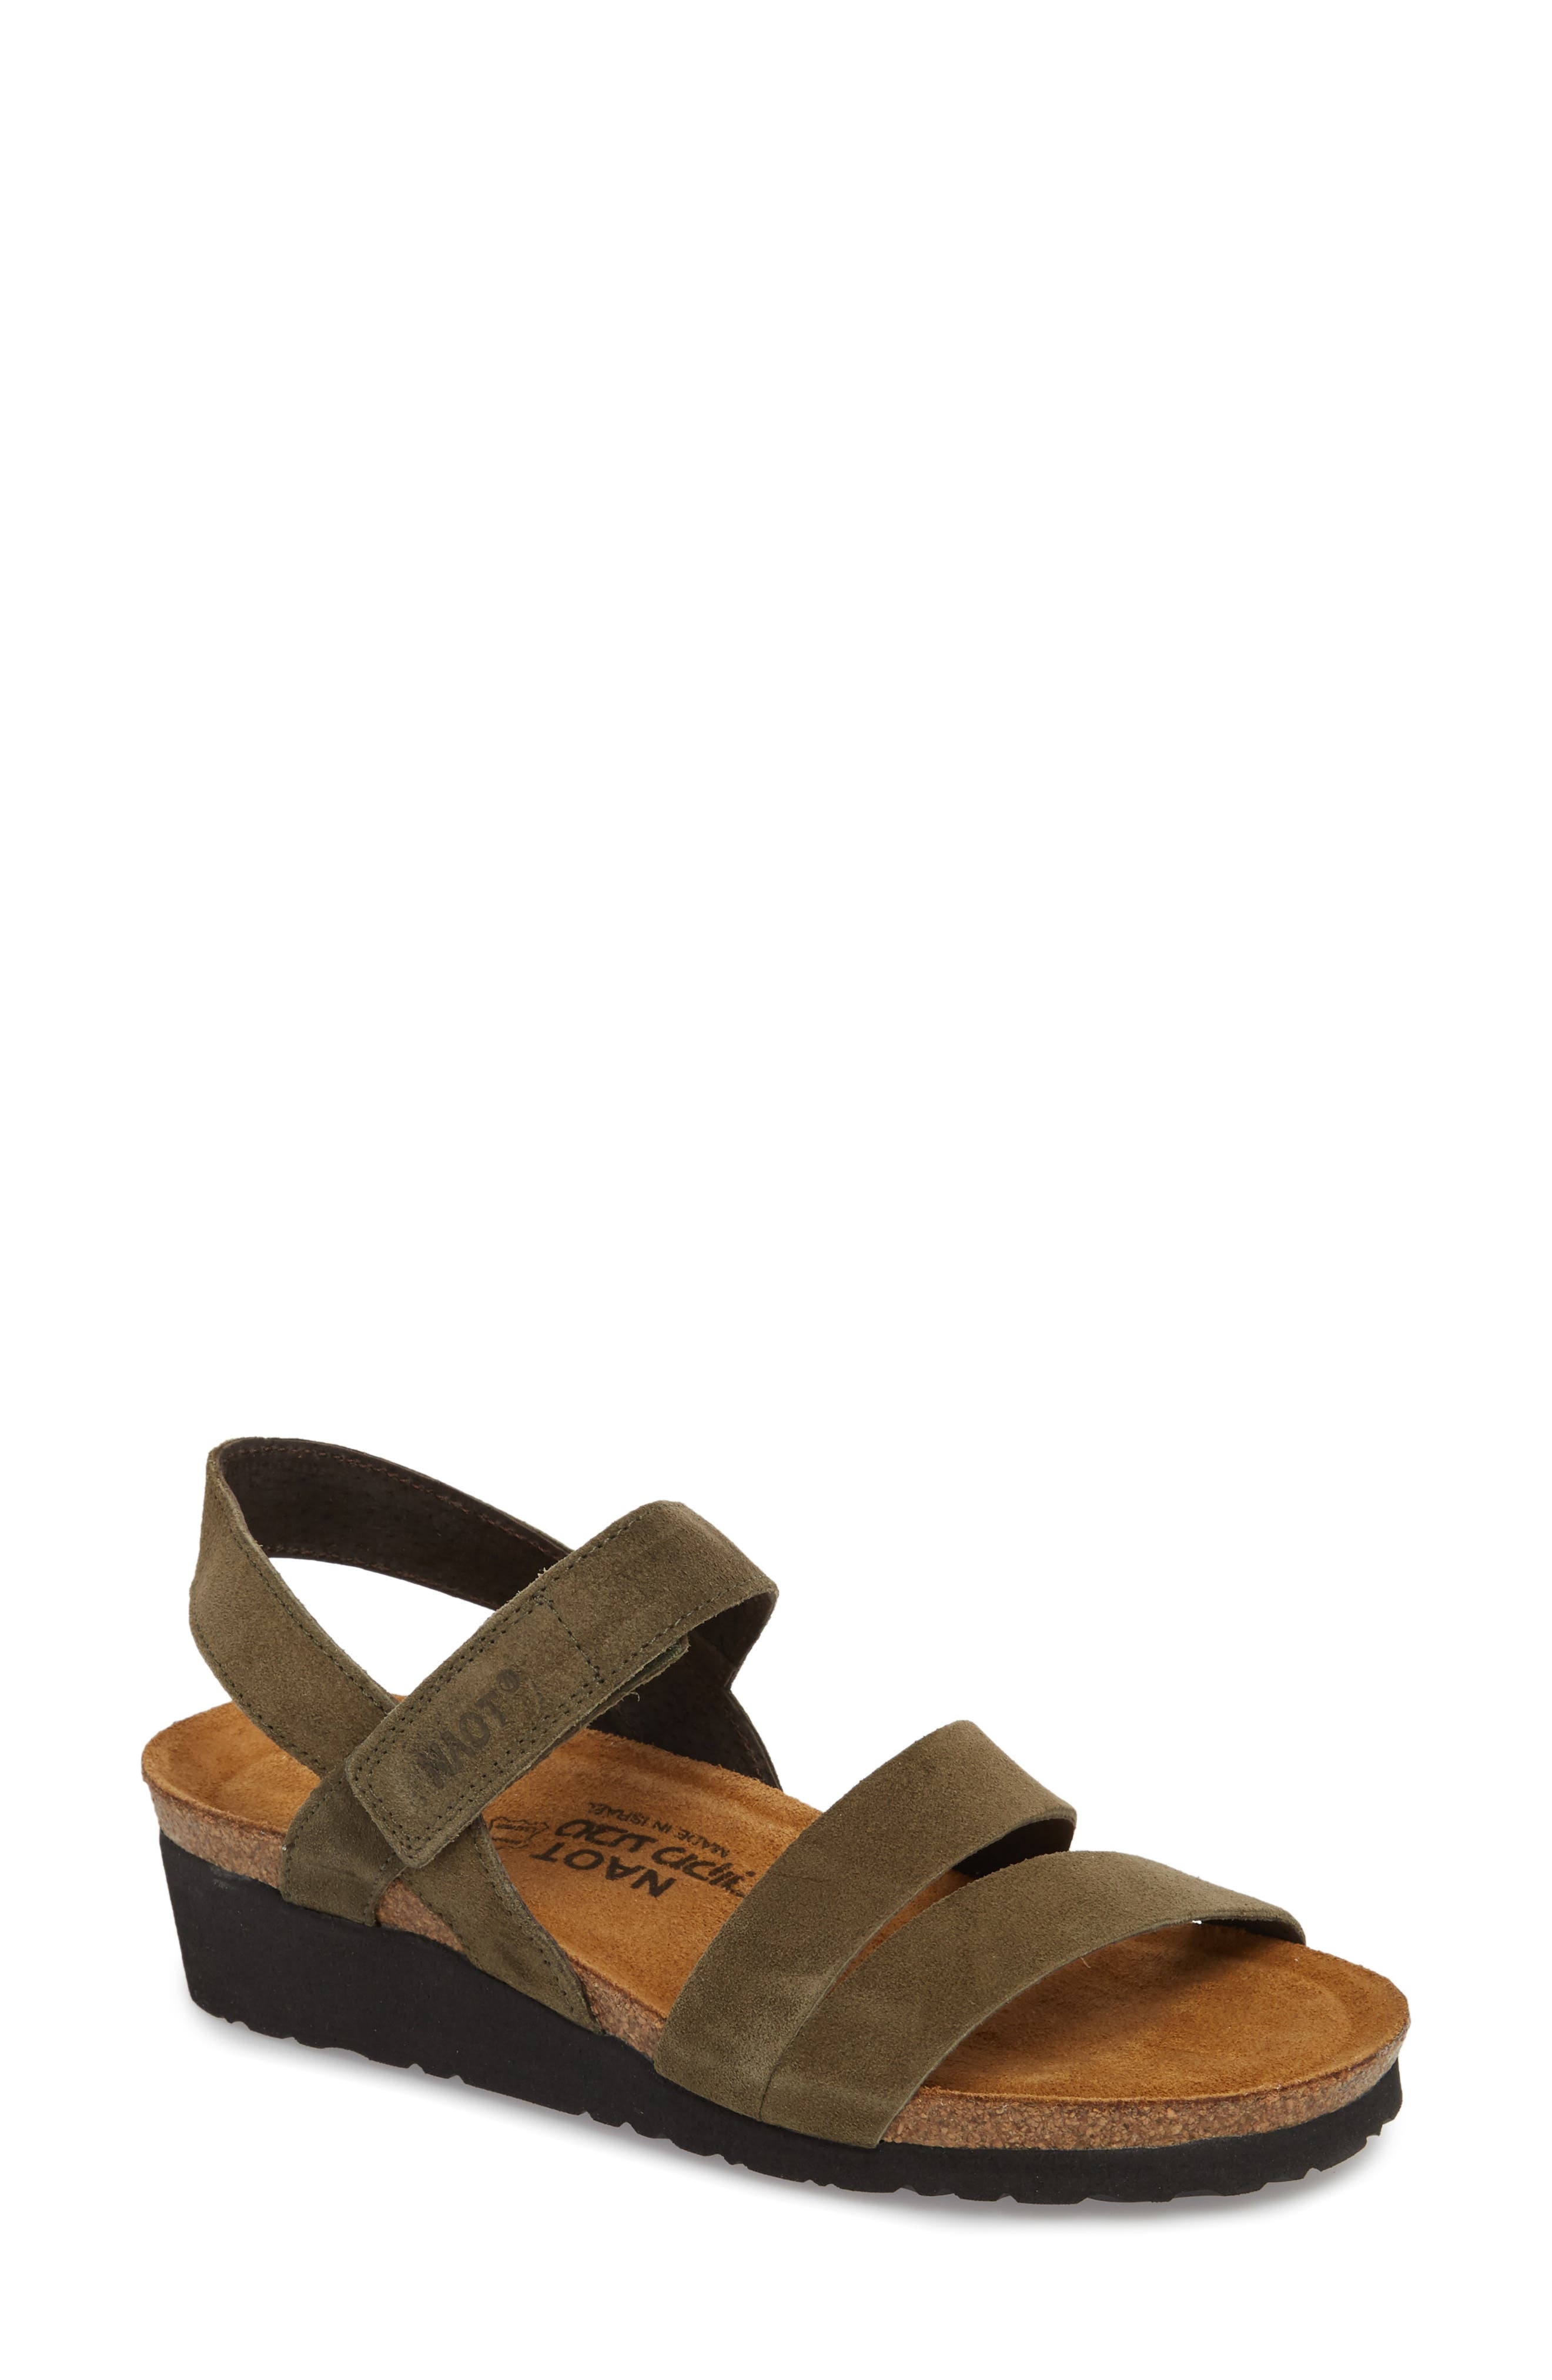 'Kayla' Sandal,                             Main thumbnail 1, color,                             OILY OLIVE SUEDE